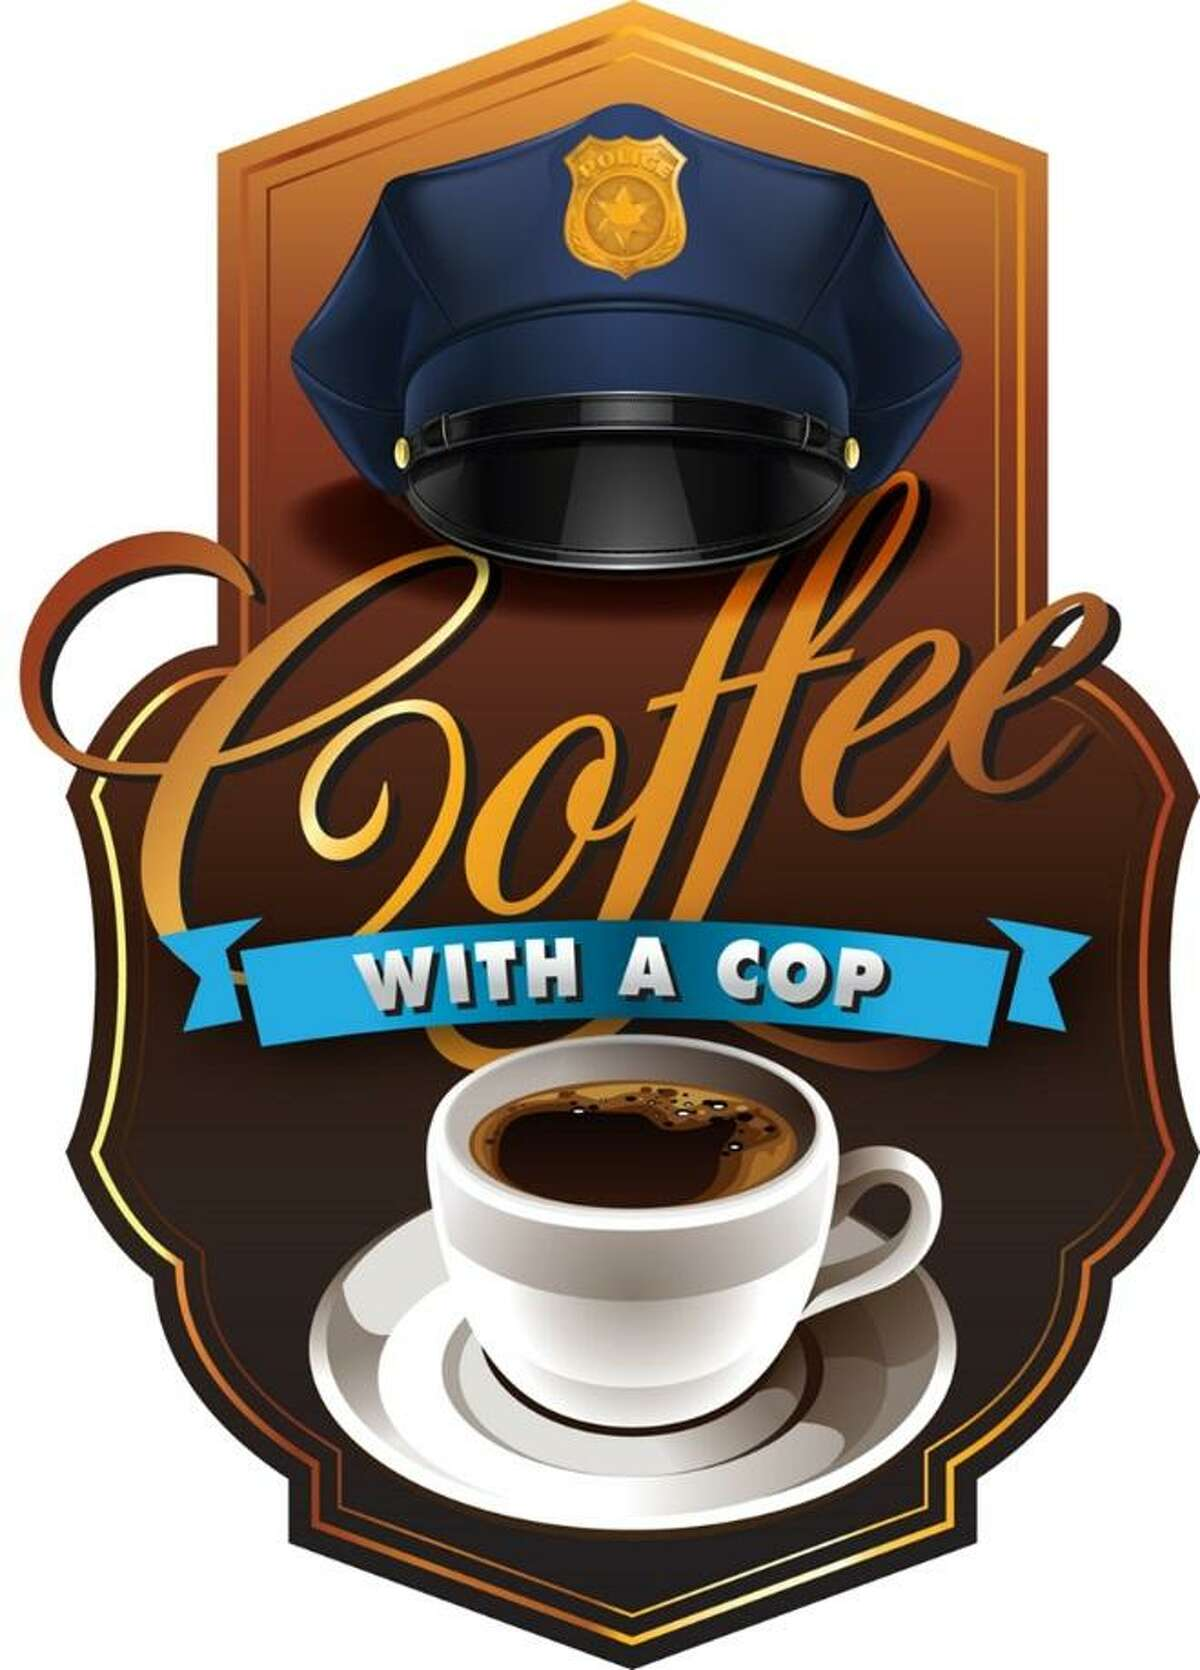 The Richmond Police Department will hold Coffee with a Cop from 8-10 a.m. Wednesday, Aug. 15, at the Richmond Market H-E-B, 23500 Berry Parkway in Richmond.